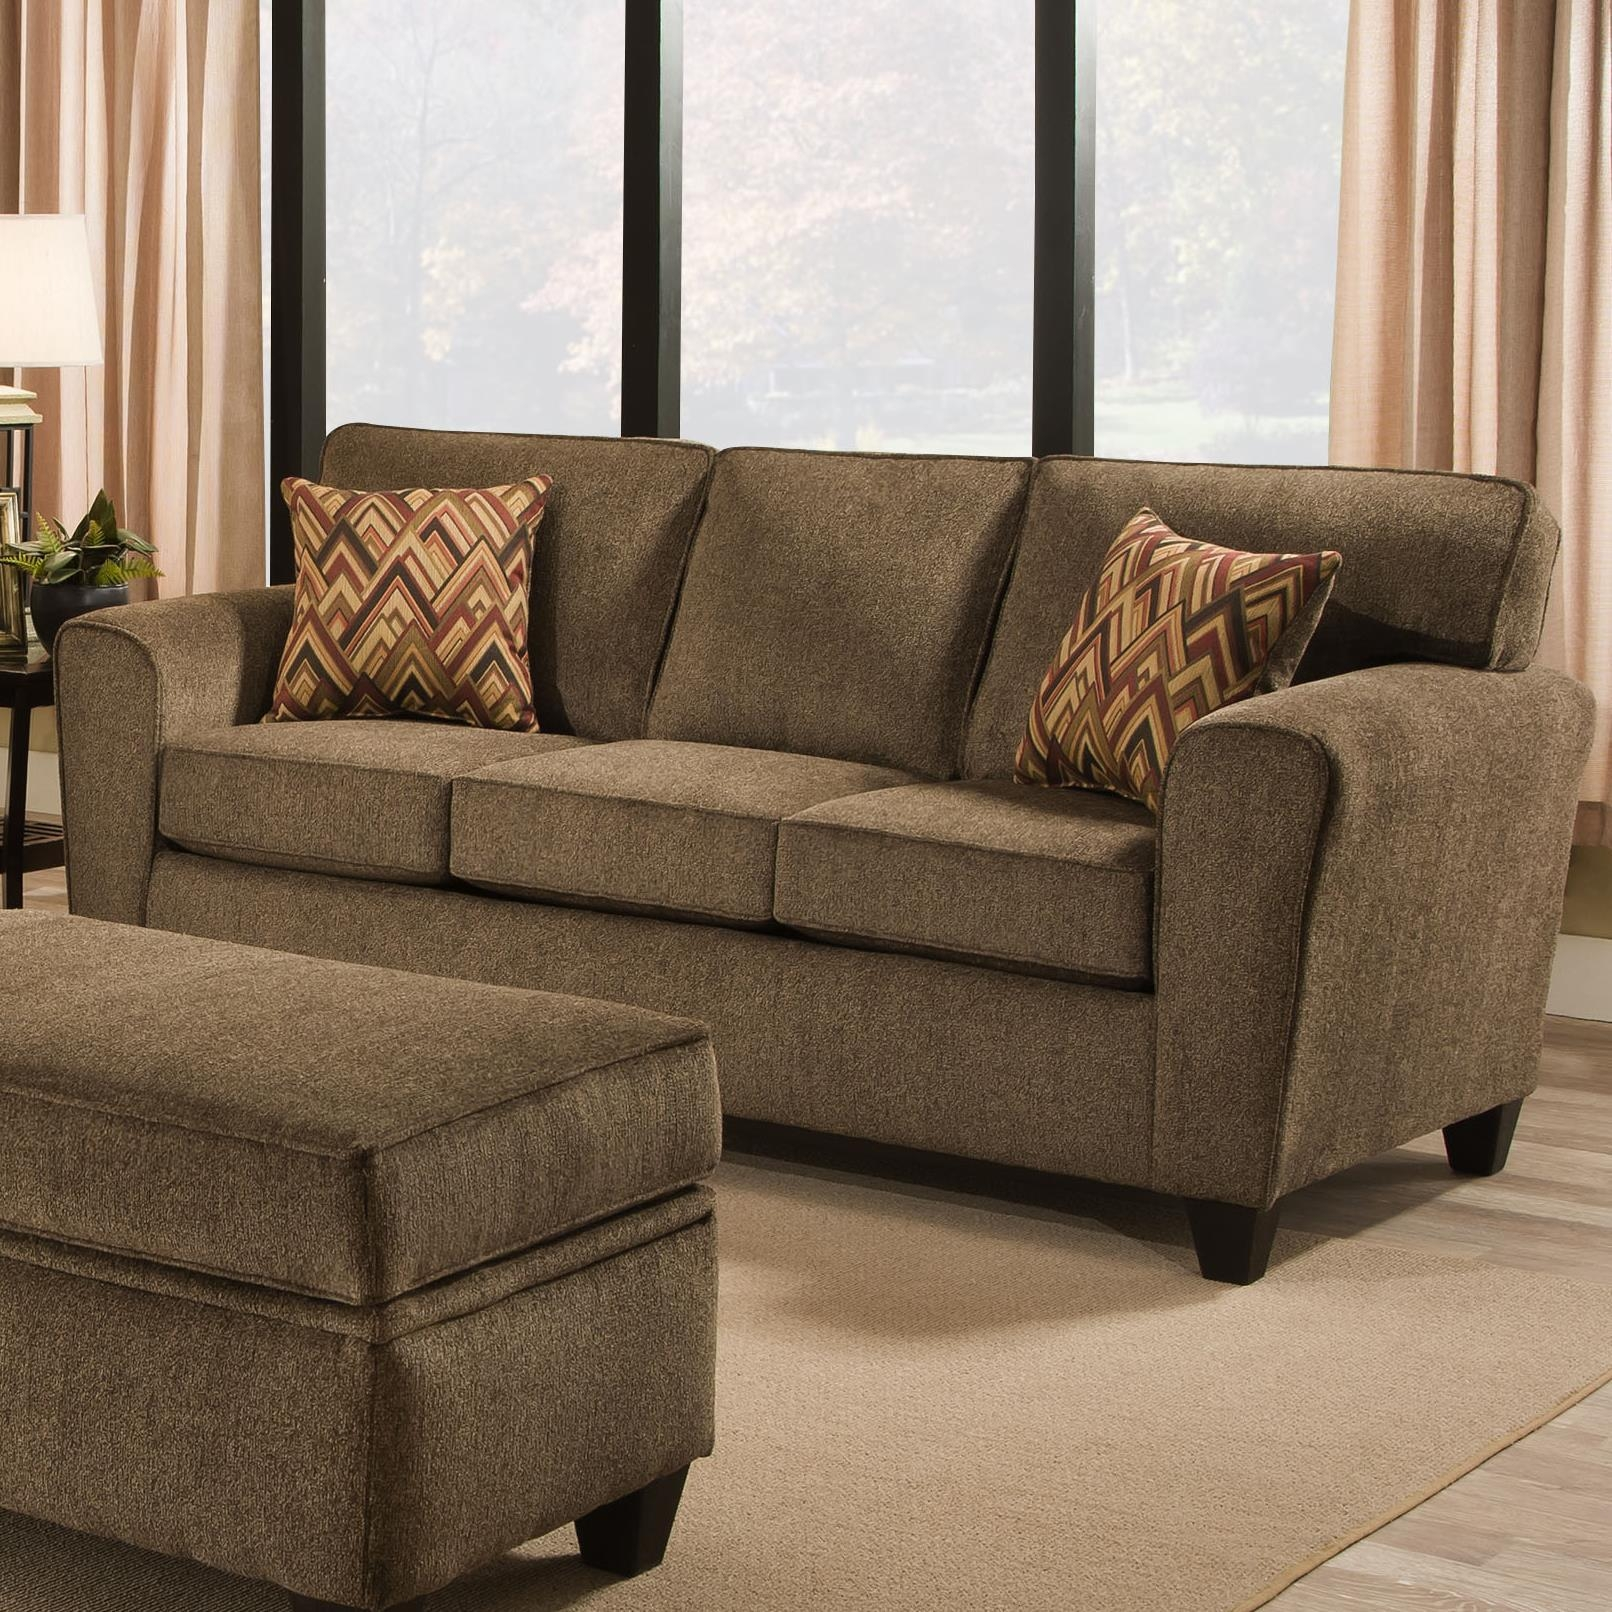 Furniture: Deep Seated Sofa Sectional | Craigslist Beds For Sale Regarding Craigslist Sectional Sofas (Image 3 of 20)